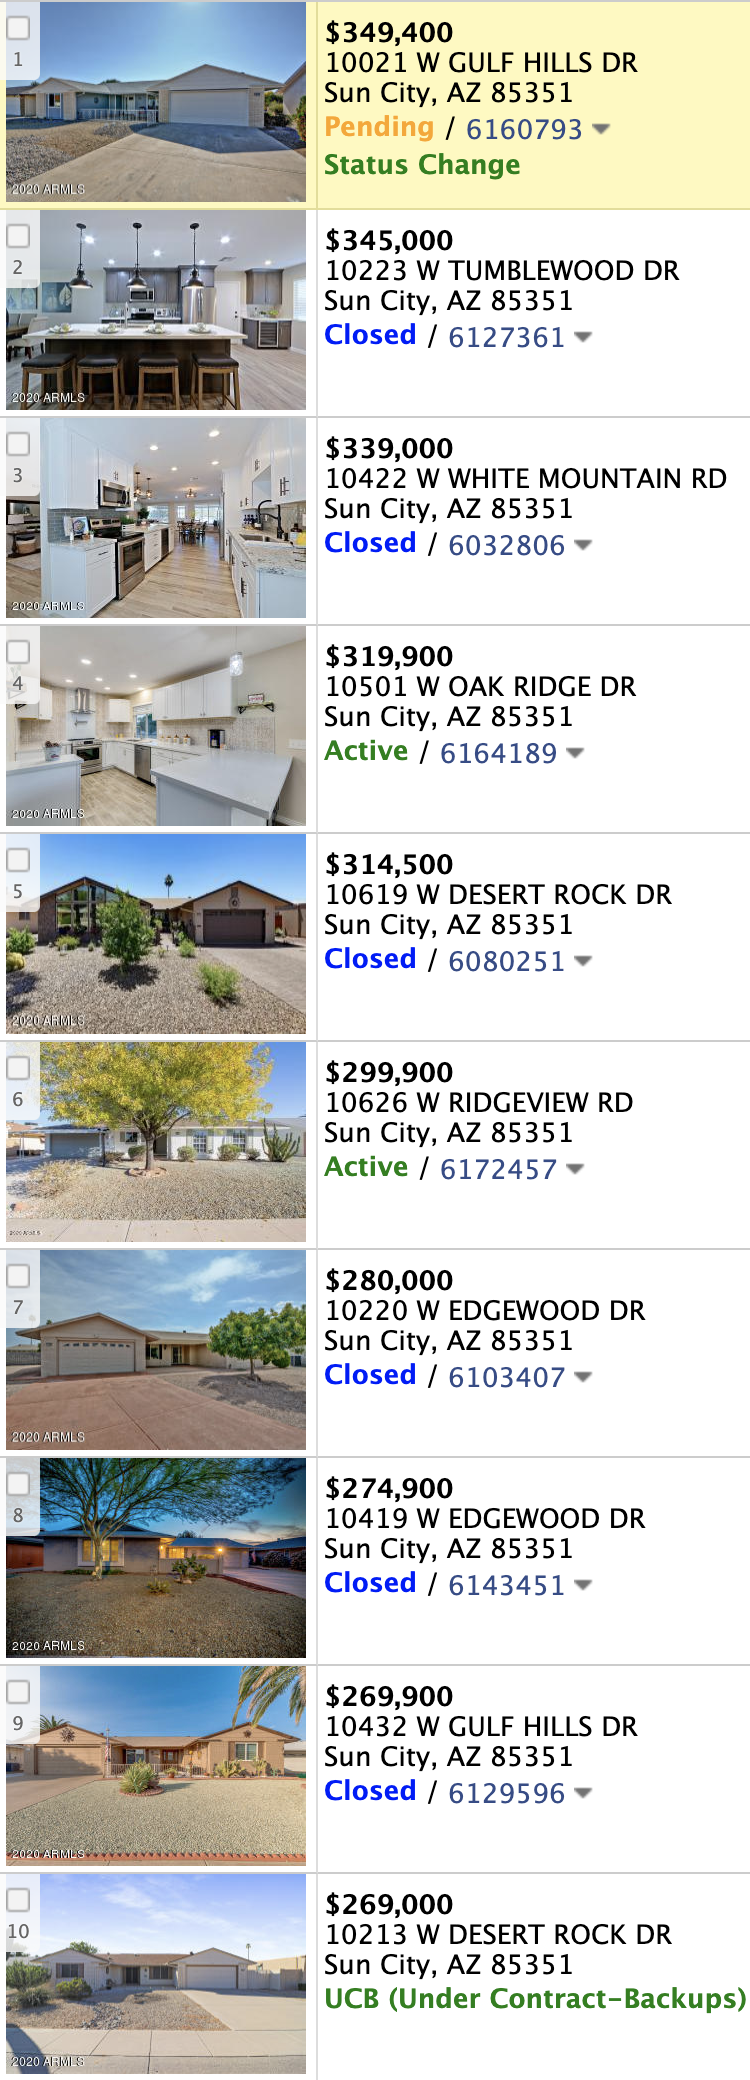 10214 W Edgewood Dr, Sun City AZ 85351 comps list